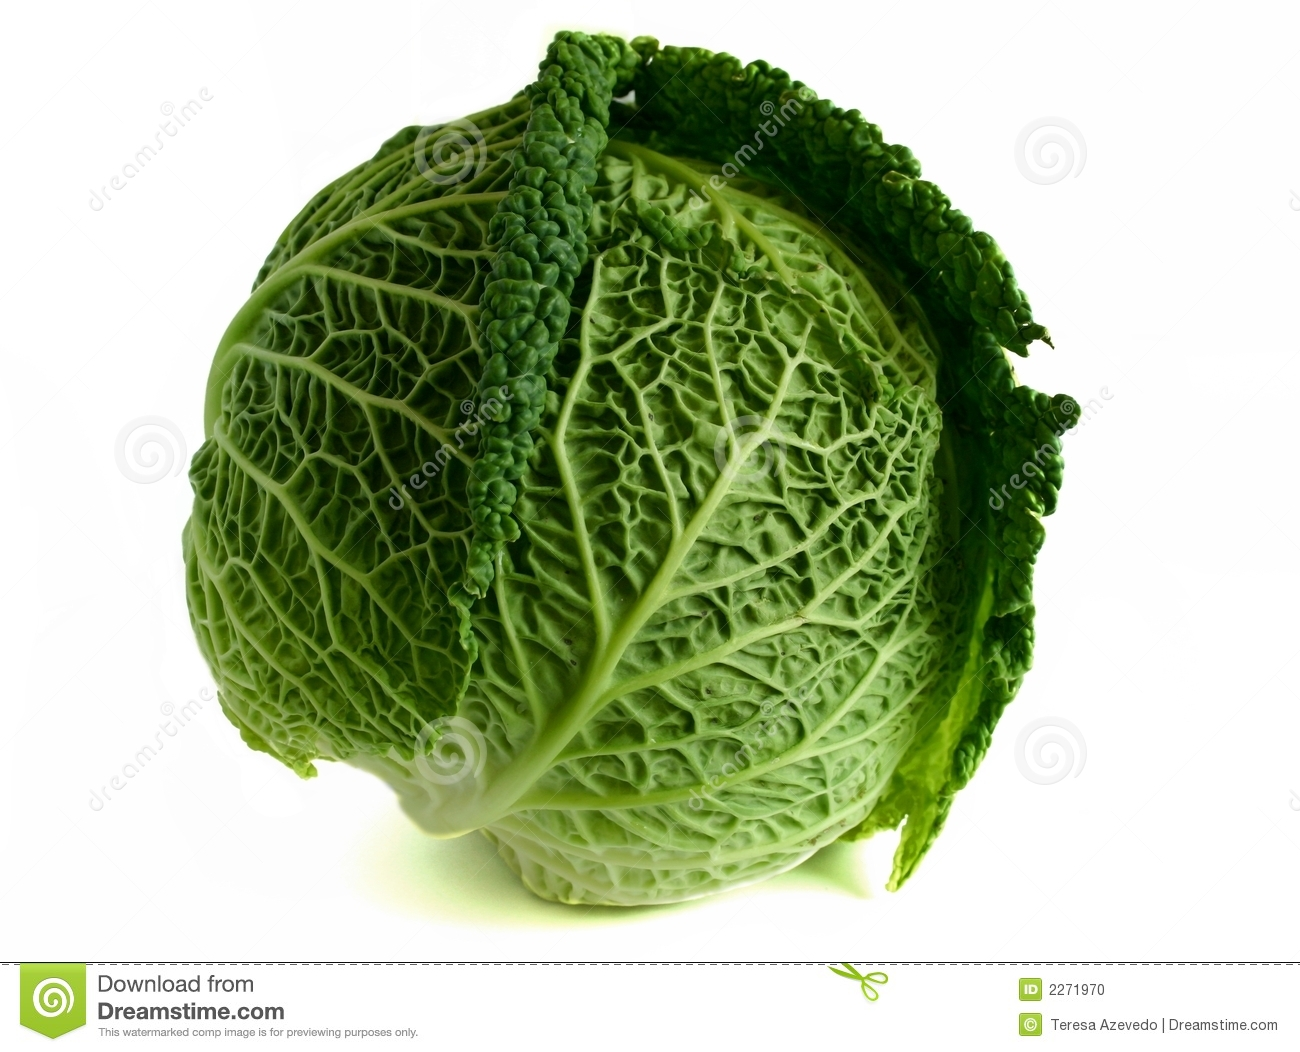 More similar stock images of ` Savoy cabbage `